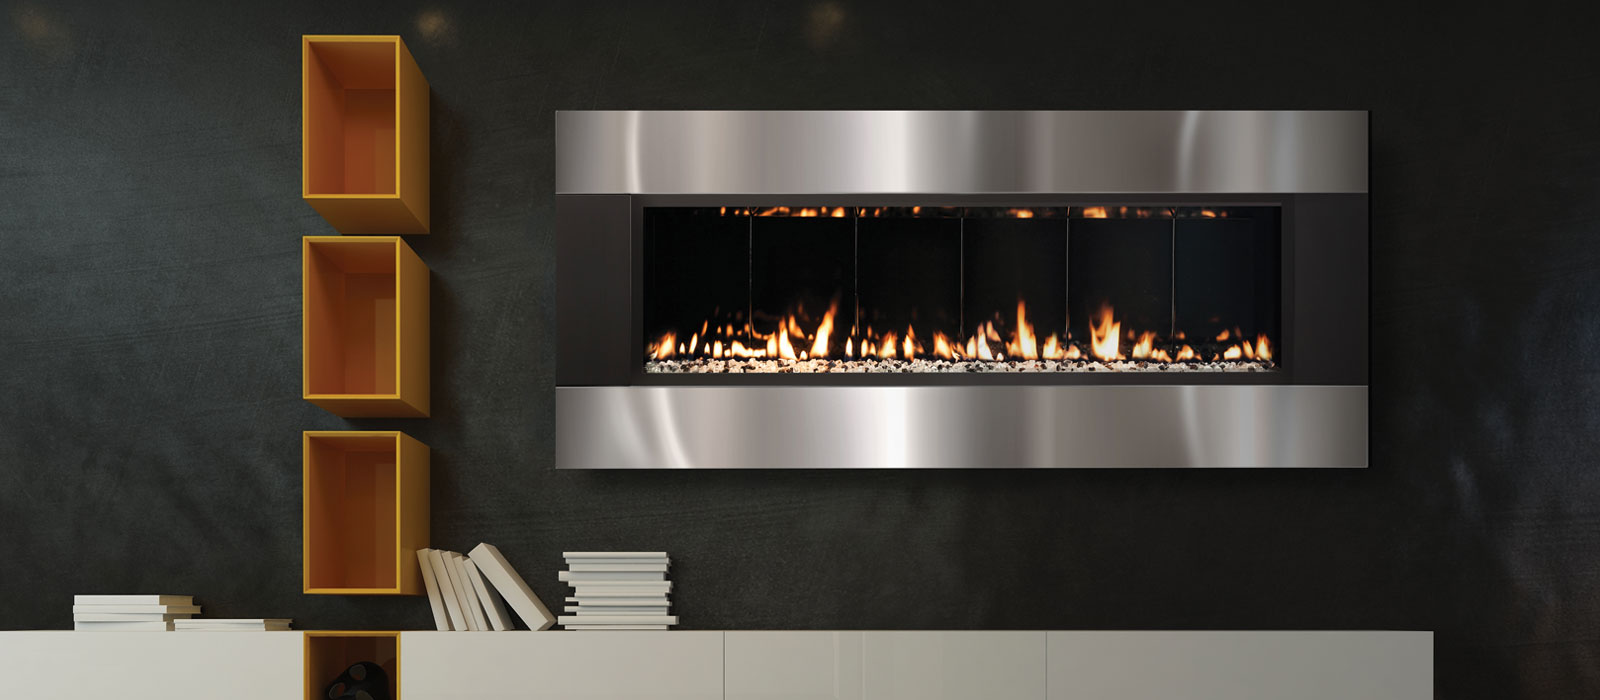 Direct Vent Gas Fireplace Ratings The Fireplace Element 58